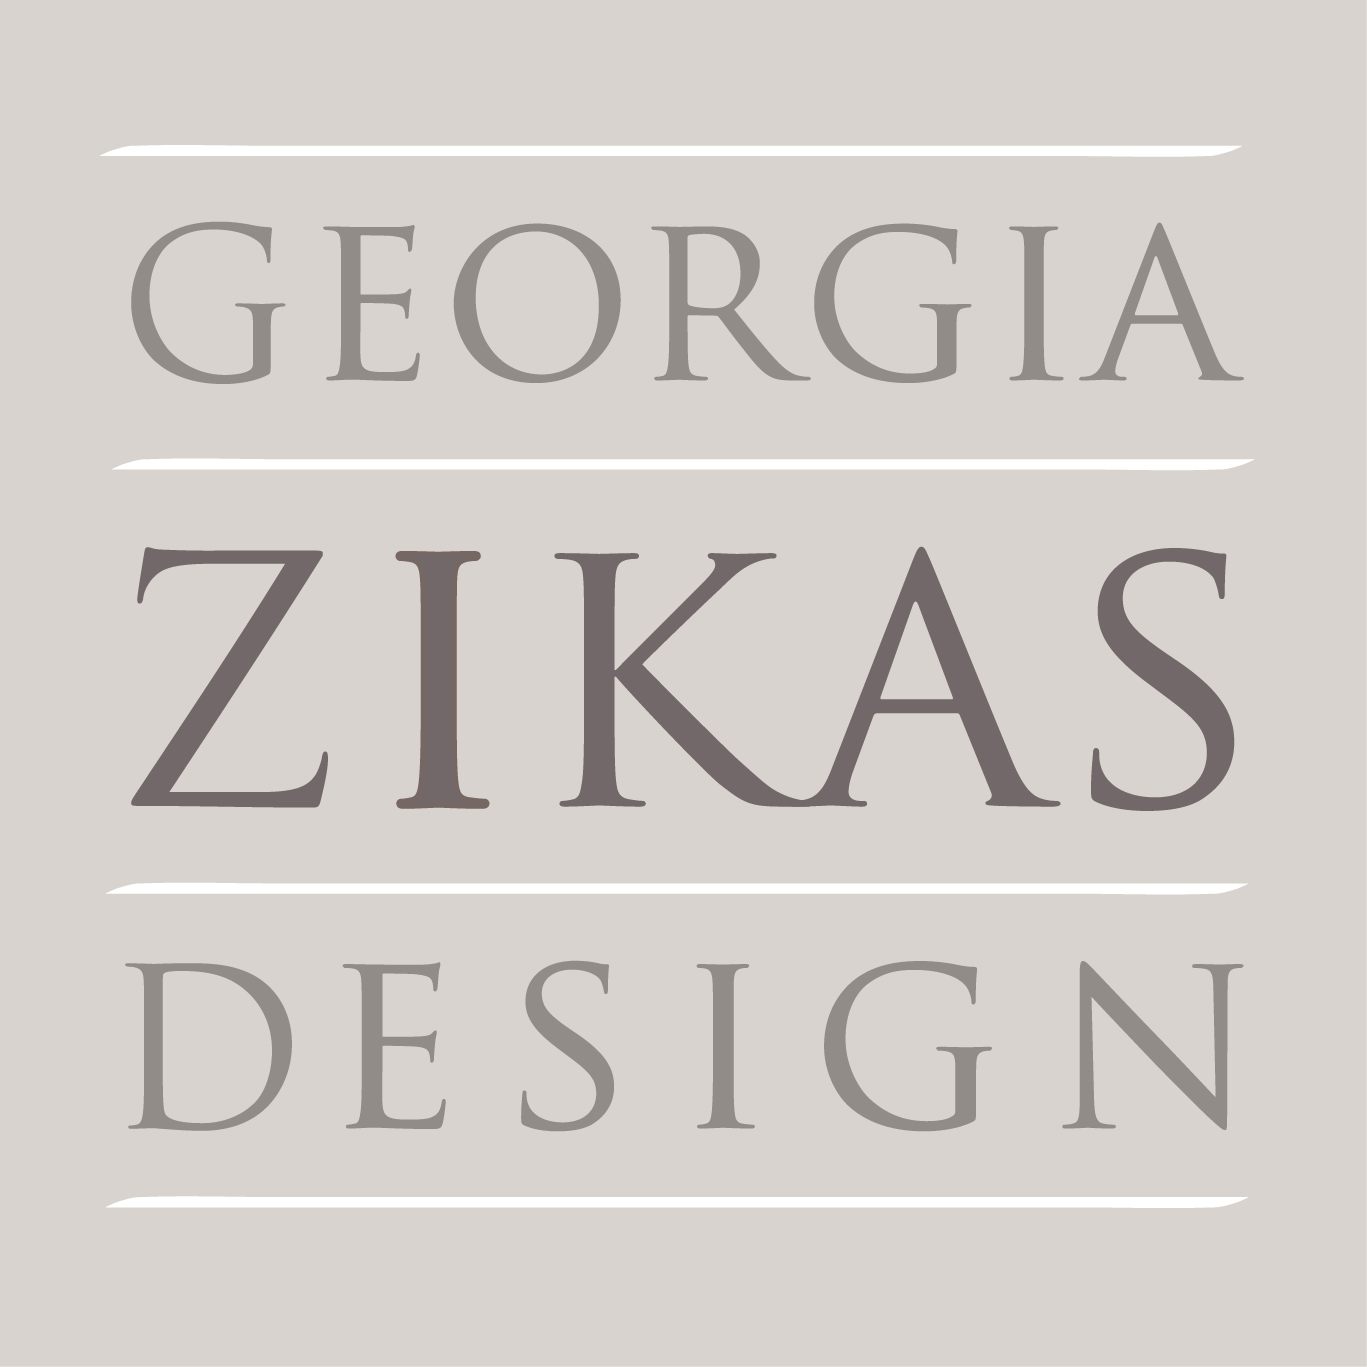 georgia-zikas-design-interior-design-3